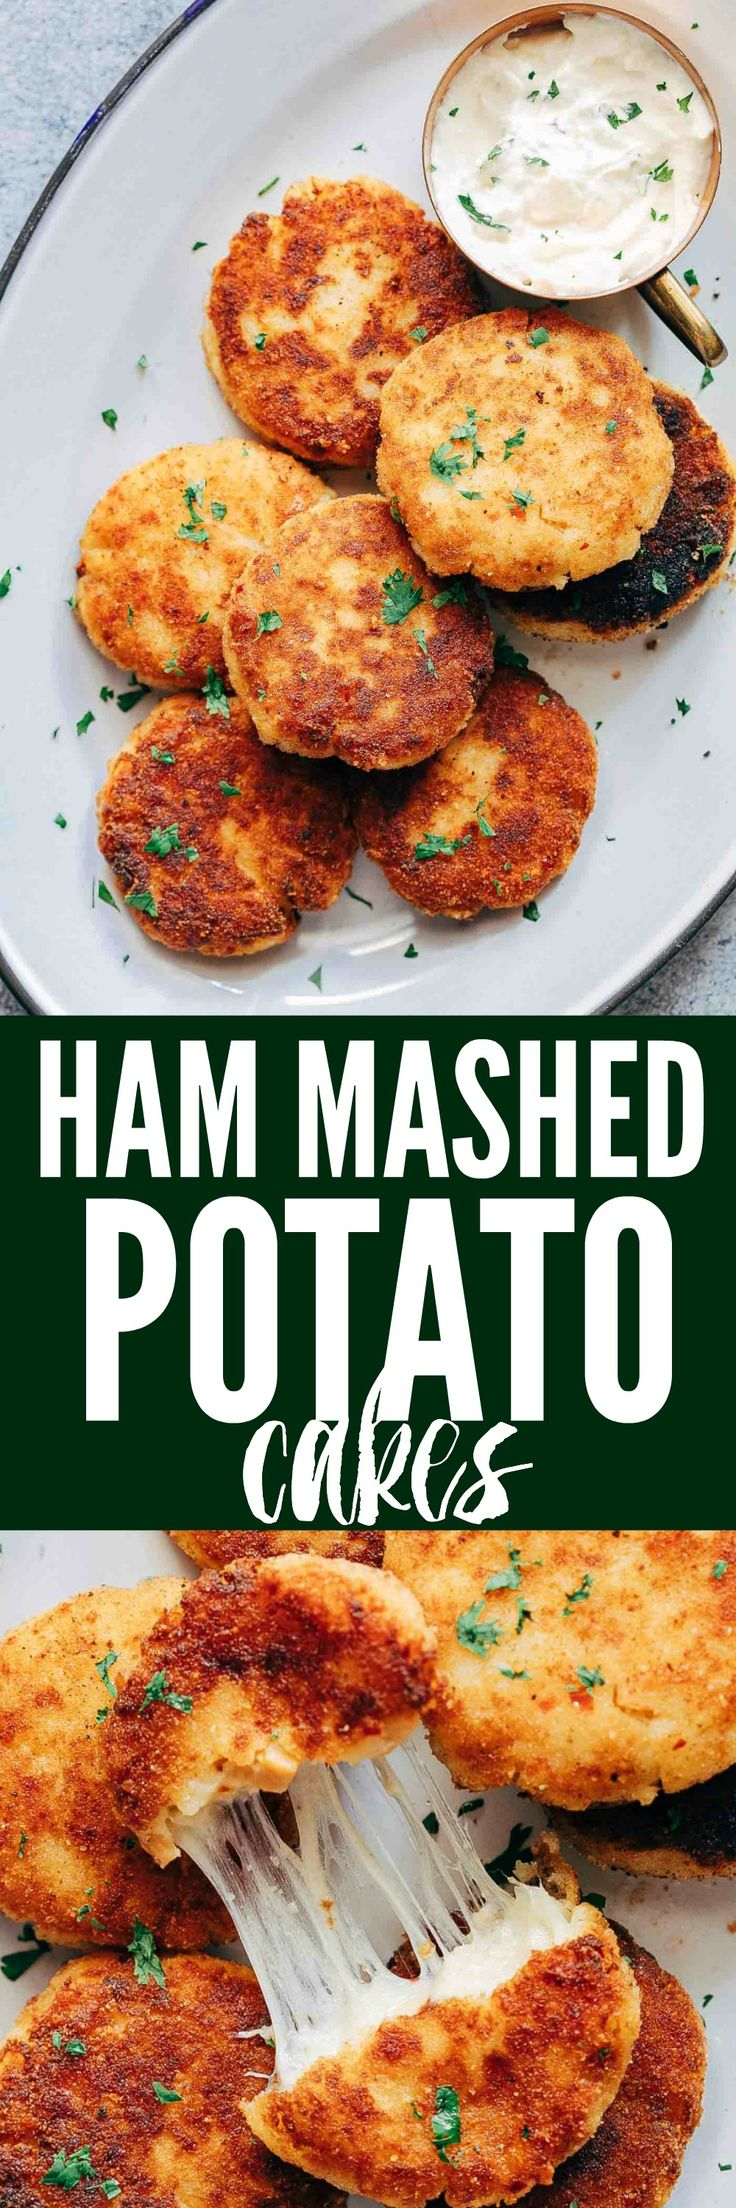 These ham mashed potato cakes are the most amazing way to use leftover mashed potatoes. They are incredibly cheesy and make for a delicious snack or appetizer!